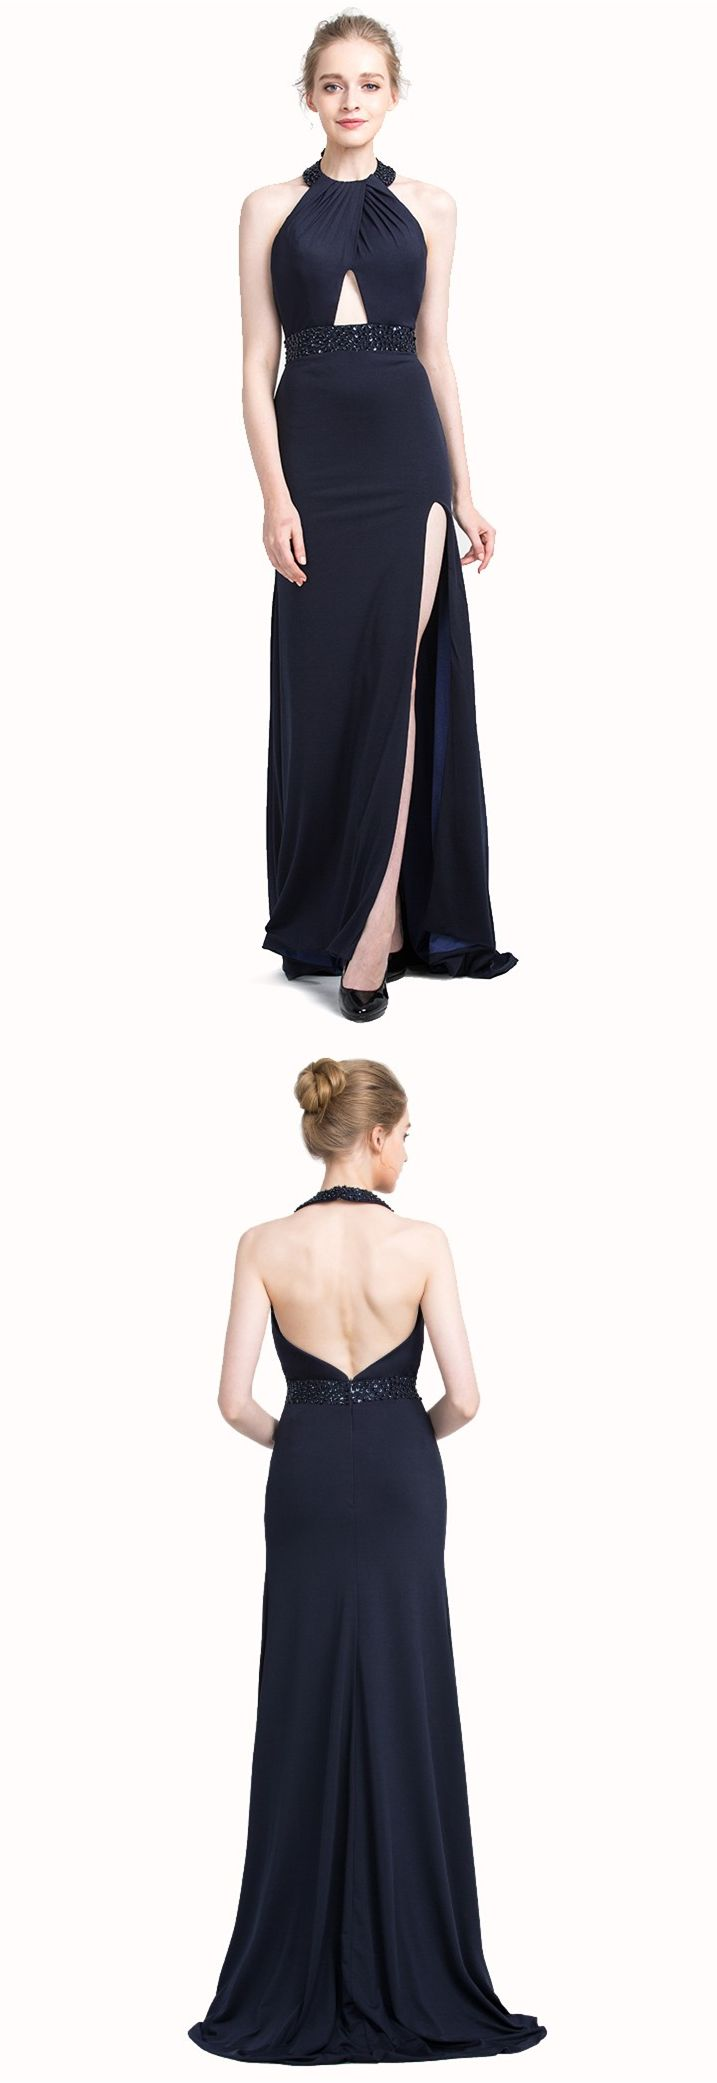 Sheath navy blue halter keyhole backless sweep train prom dress with